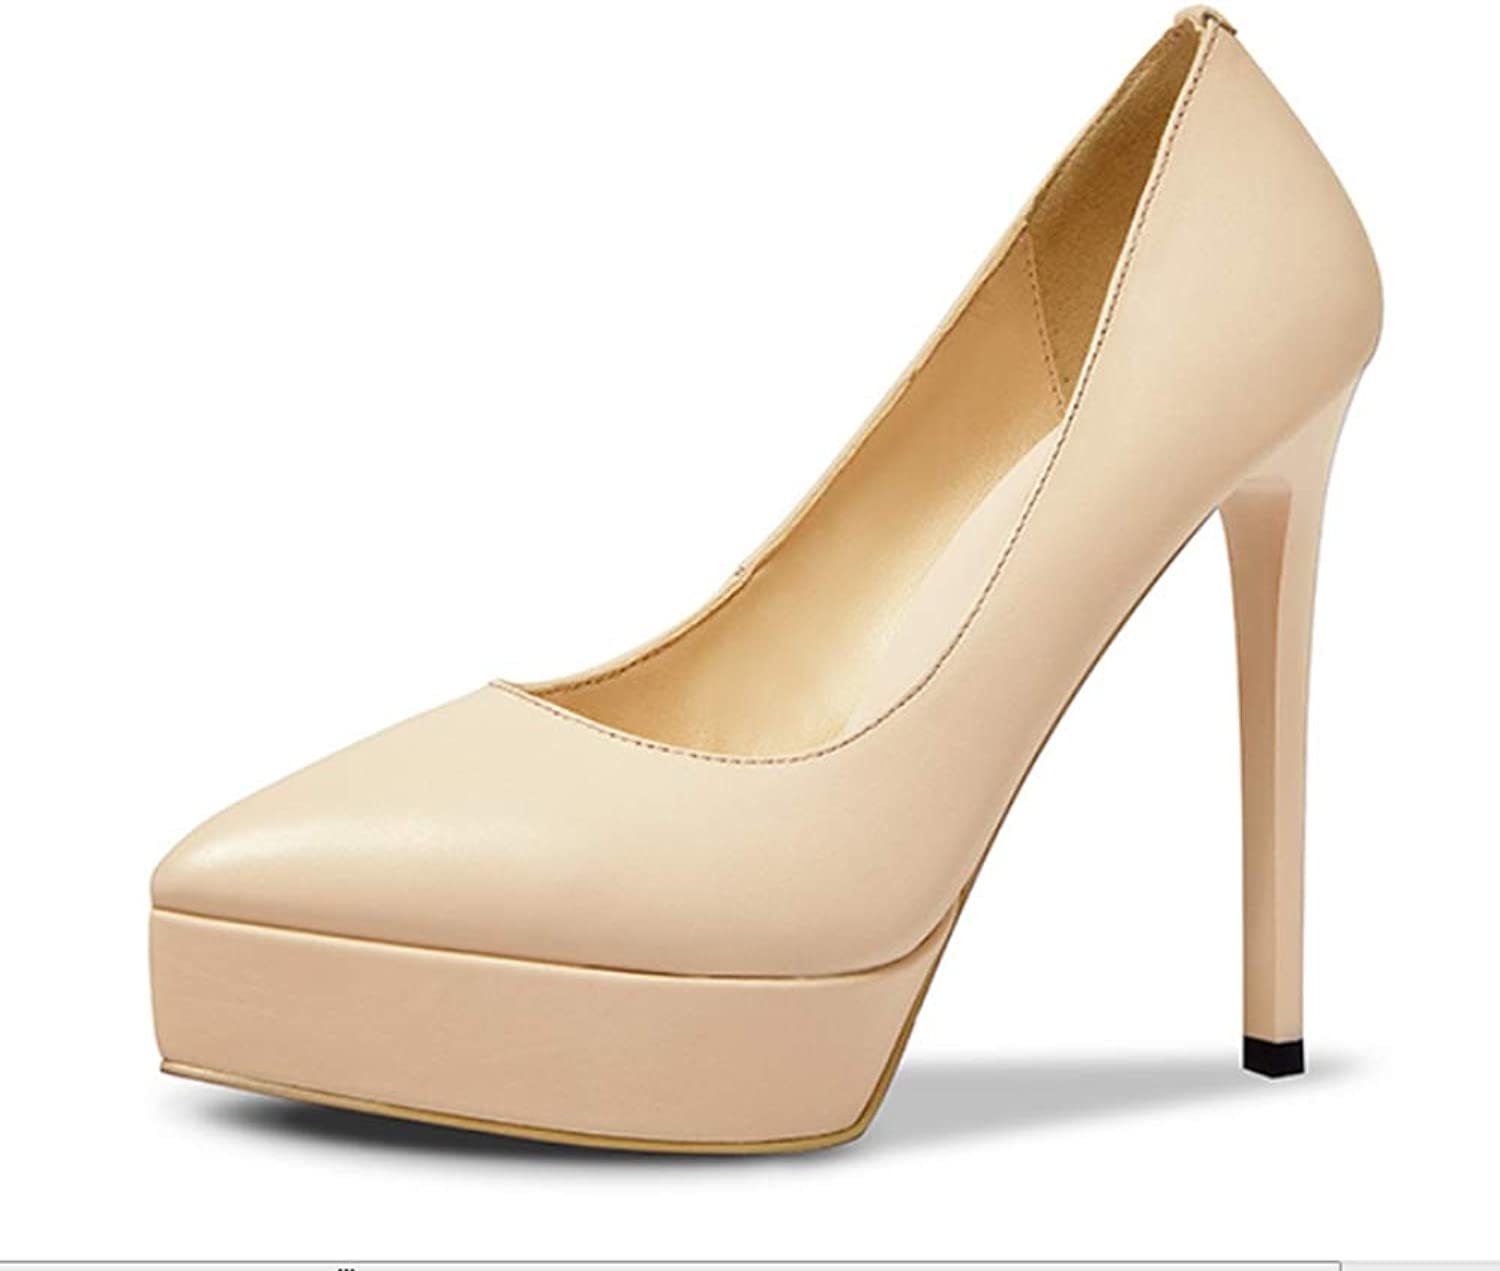 Shallow Mouth high Heel Women's shoes Stiletto Pointed high Heels Leather Waterproof Platform Women's shoes